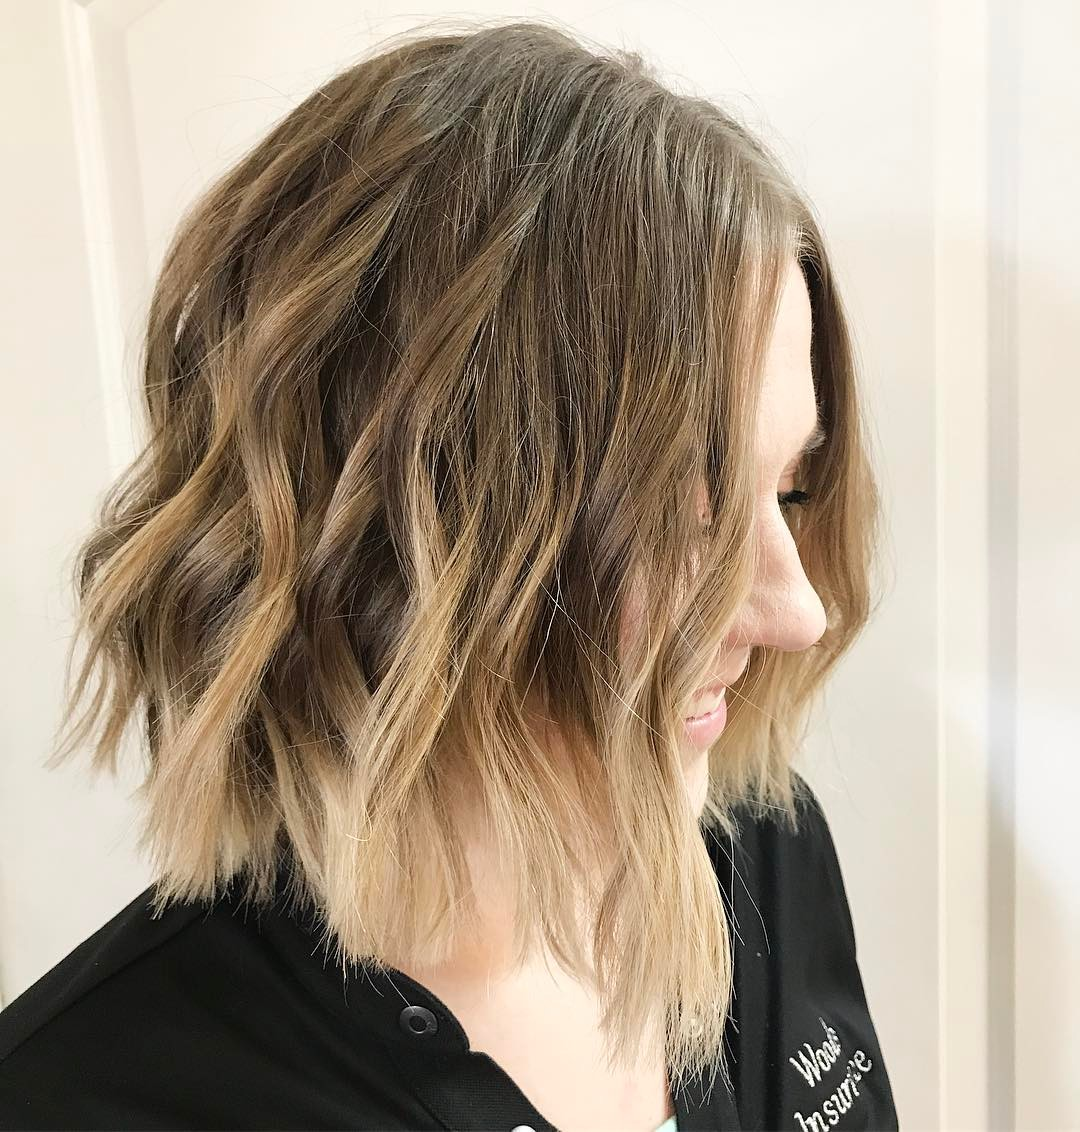 40 Super Cute Short Bob Hairstyles For Women 2018 Styles